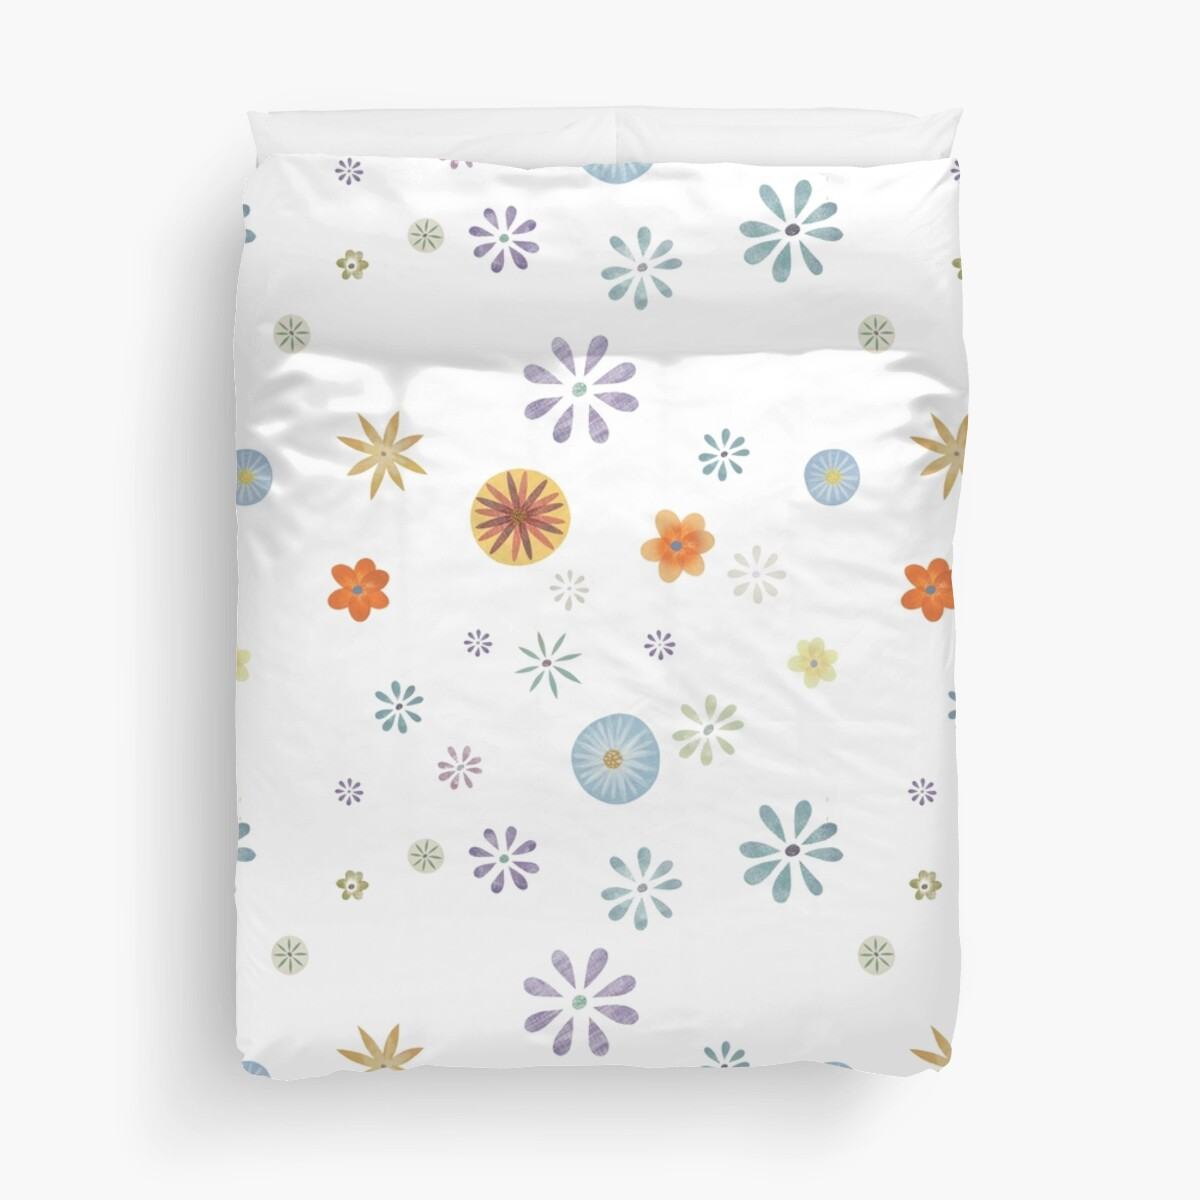 Flower Spray White XL by Sandra Dionisi